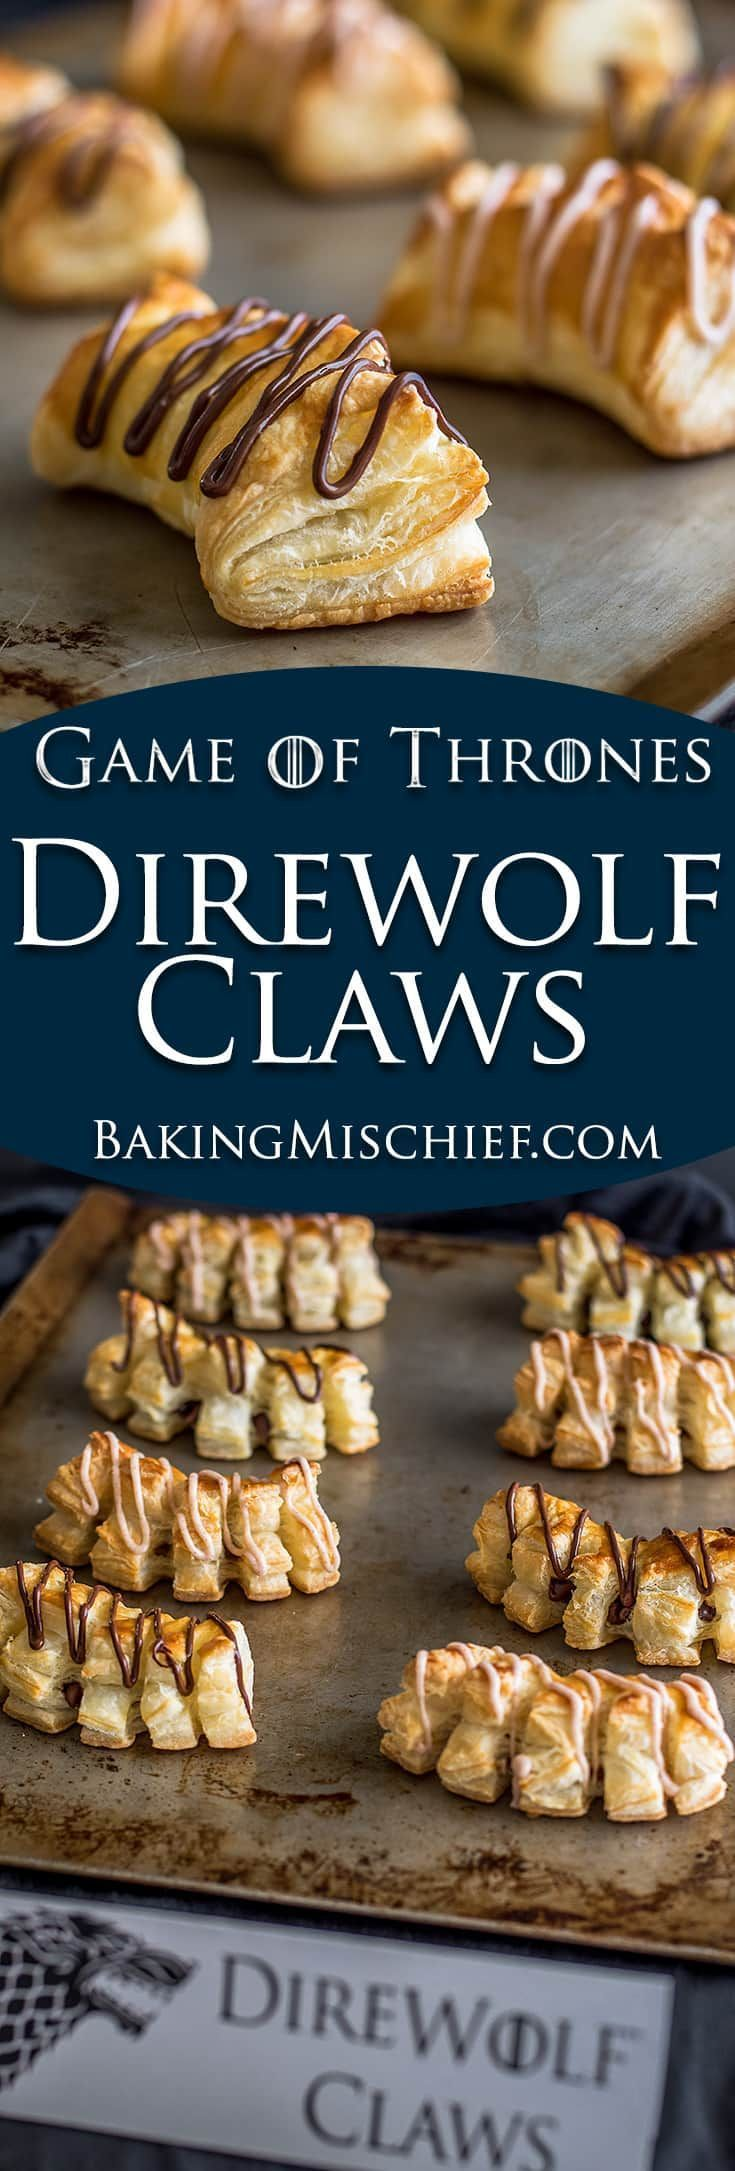 These Direwolf Claws are the perfect fun and easy dessert for Game of Thrones watch parties! | Nerdy Recipes | Nerdy Desserts |